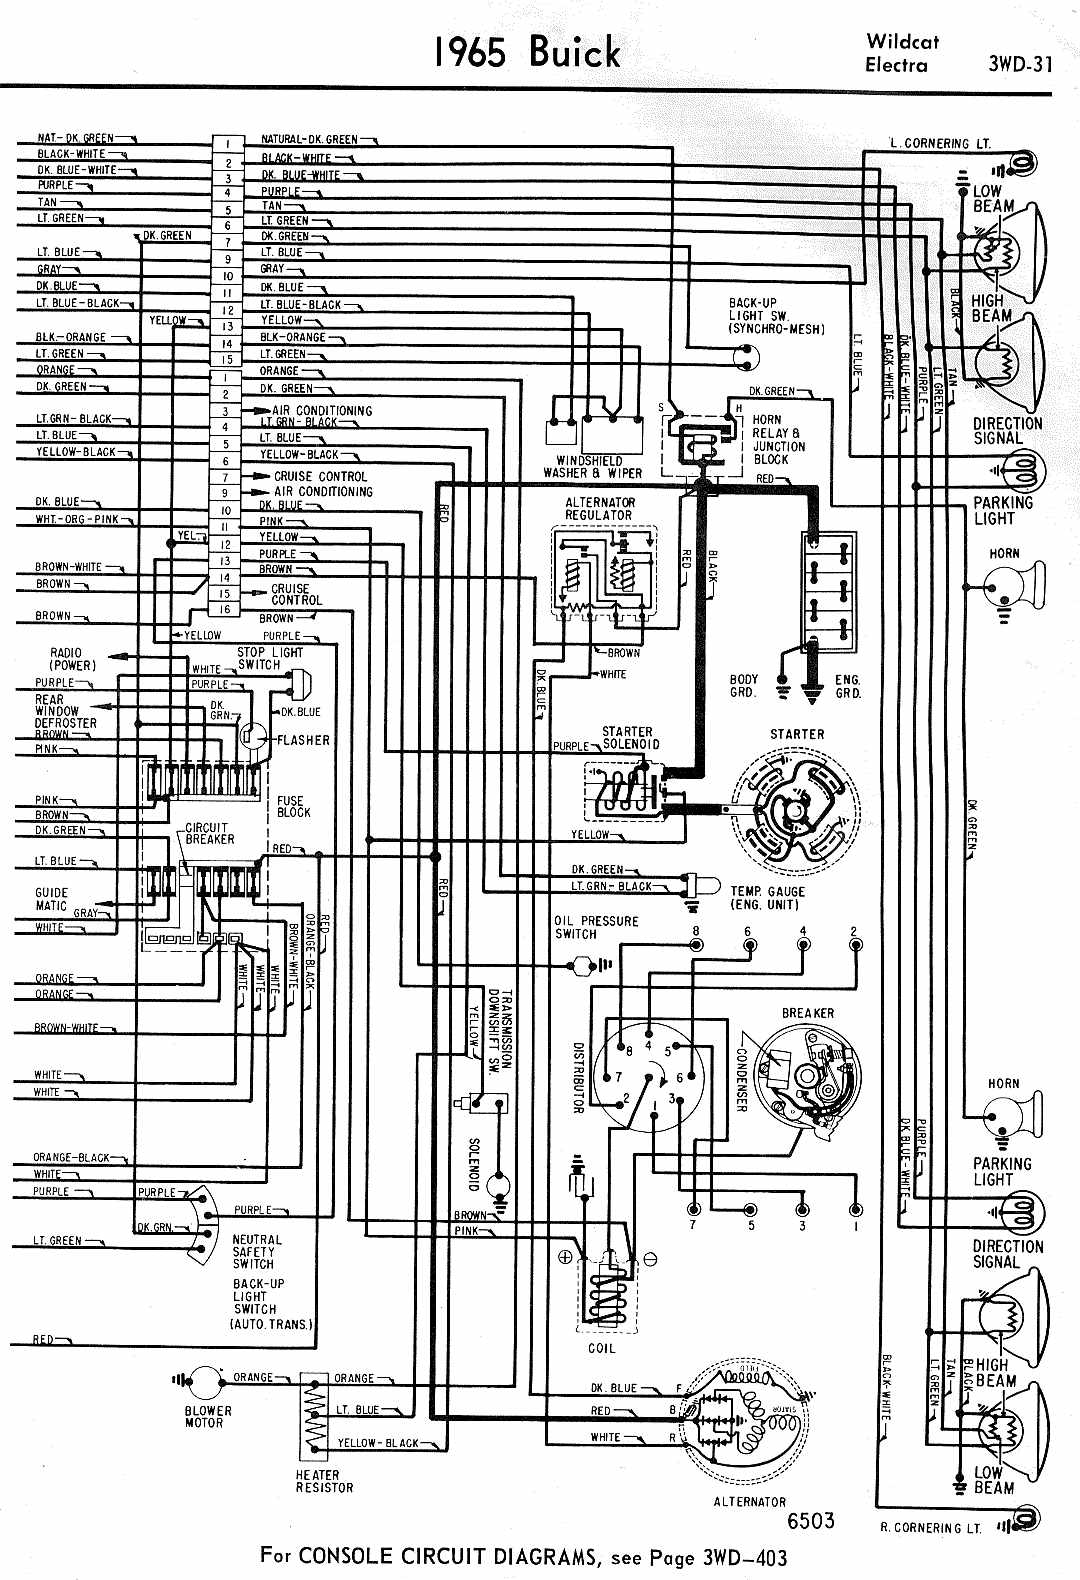 1972 Buick Wiring Diagram Schematic - Block And Schematic Diagrams •